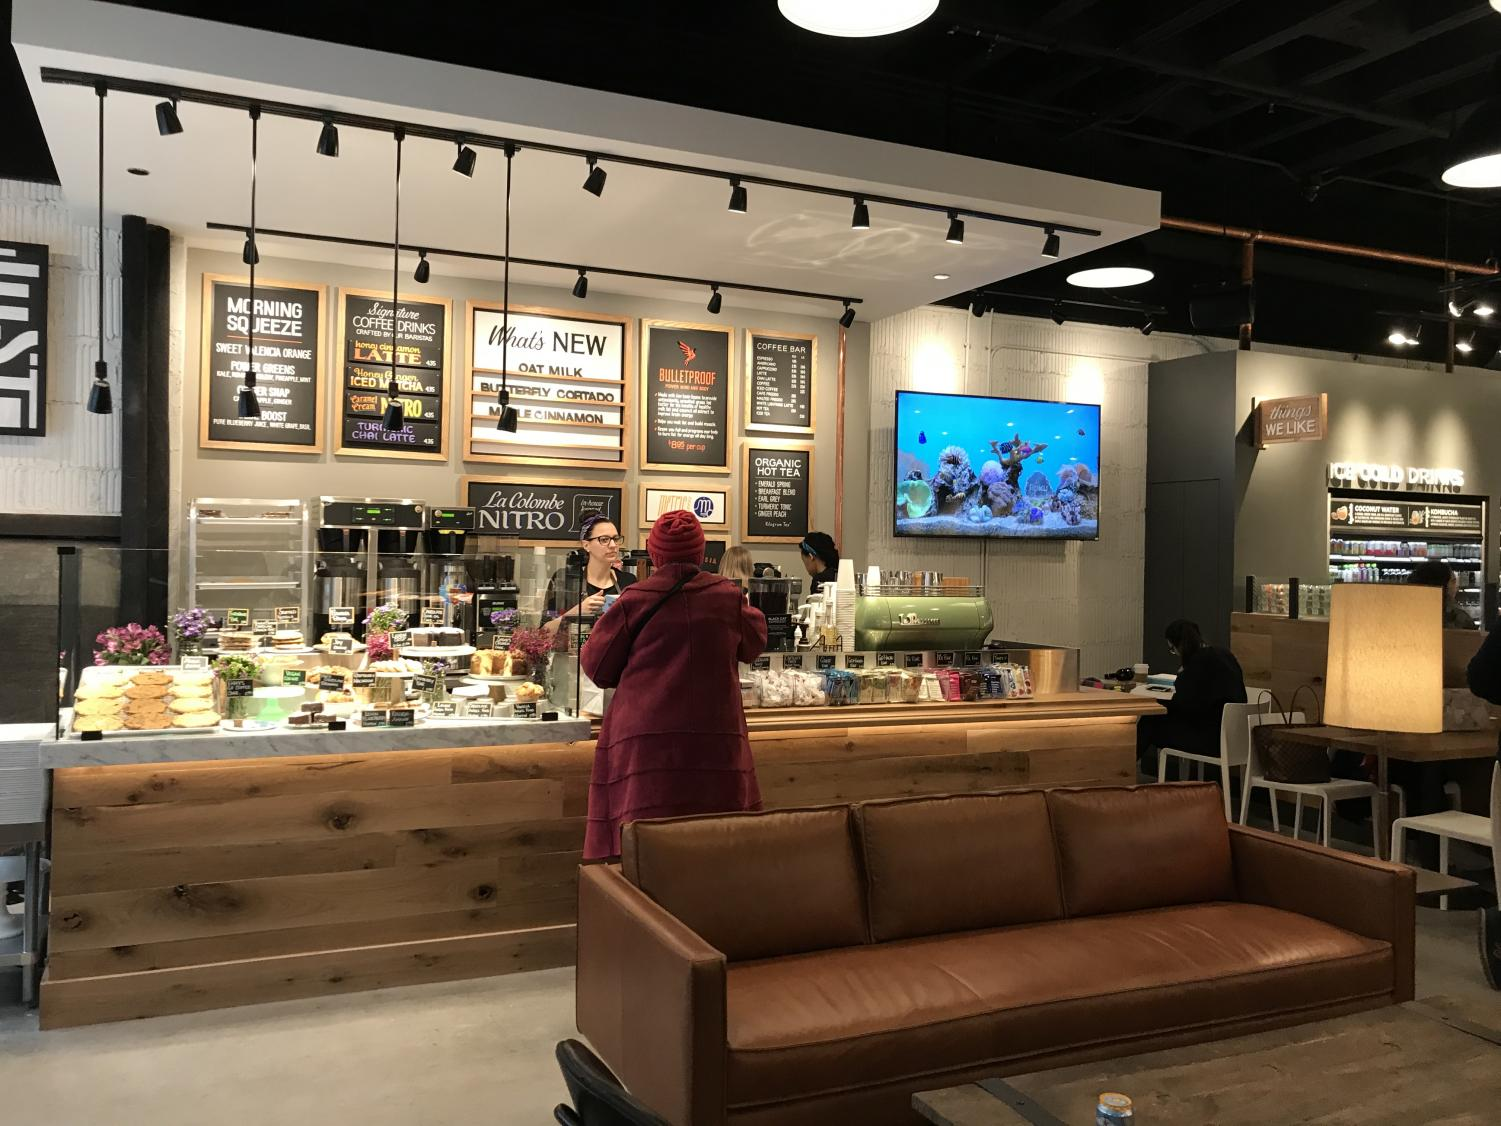 The main area in Beatrix Market, a new dining option for DePaul students in the Loop campus. It features a salad bar, hot food bar, sandwiches and much more.  (Photo courtesy of Mackenzie Born)